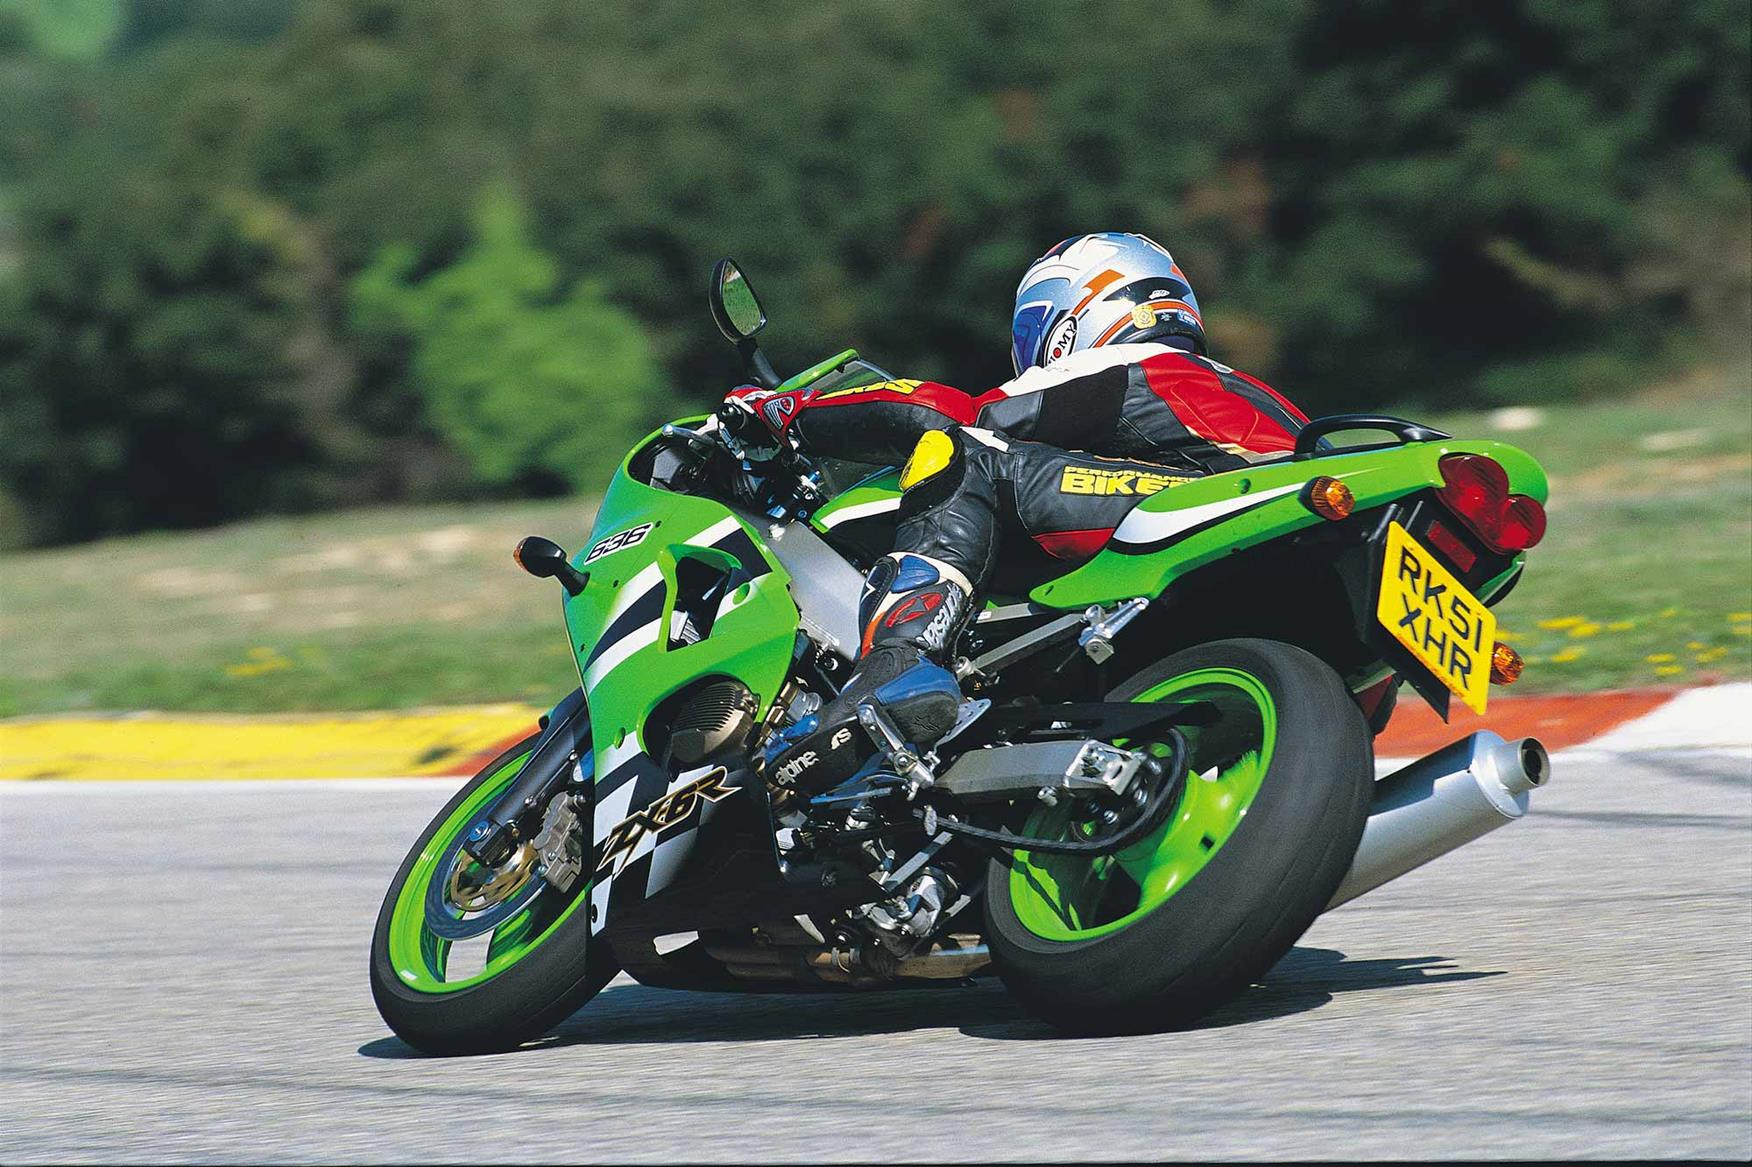 The 2002 Kawasaki ZX-6R